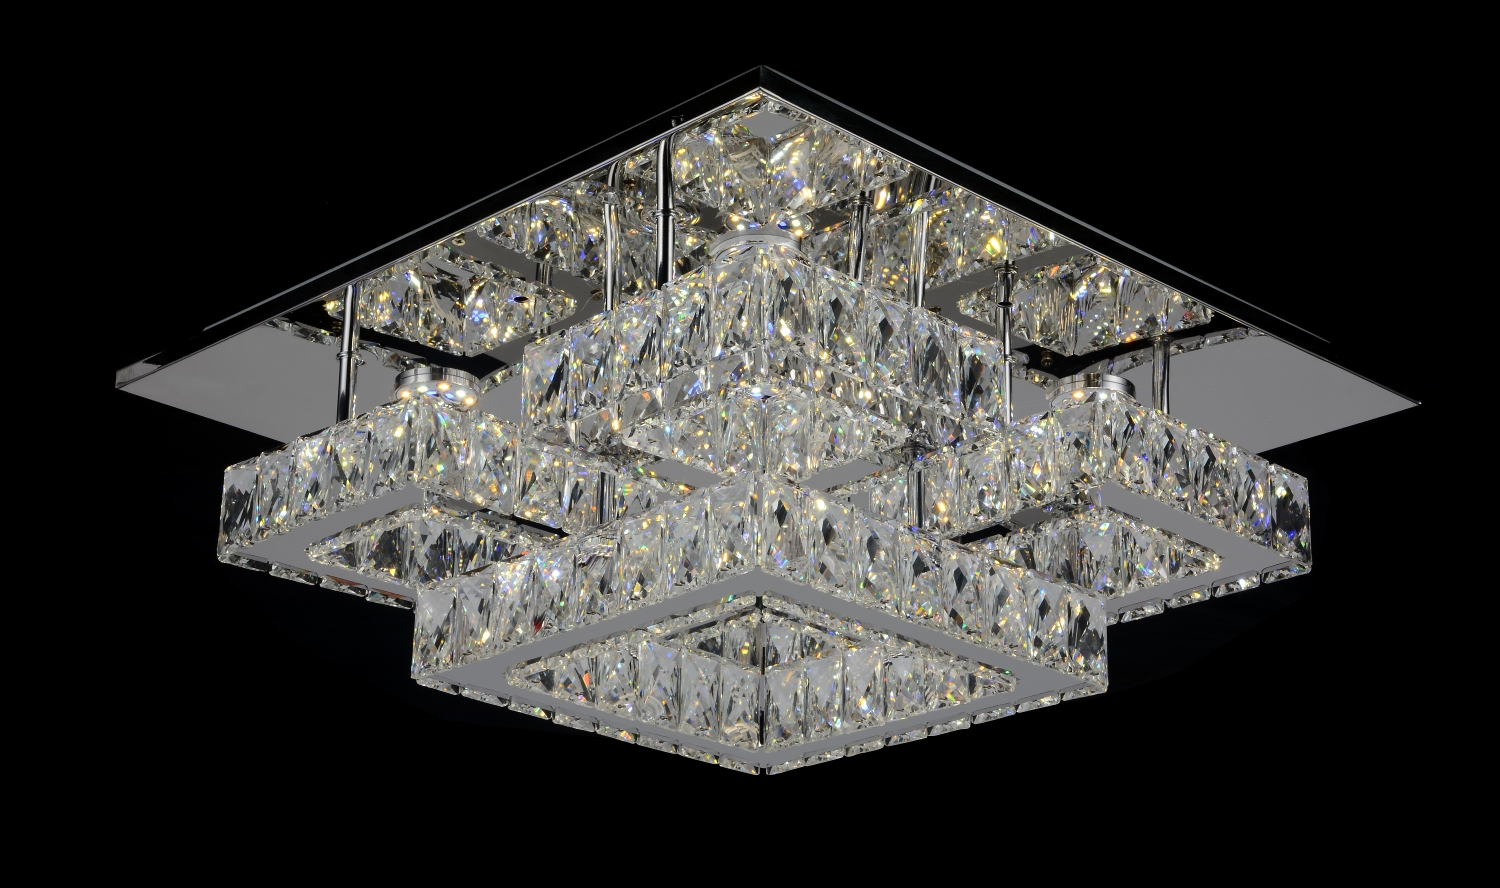 Led Verlichting 50 Lampjes Ceiling Lamp 70173 500f Citak Deco